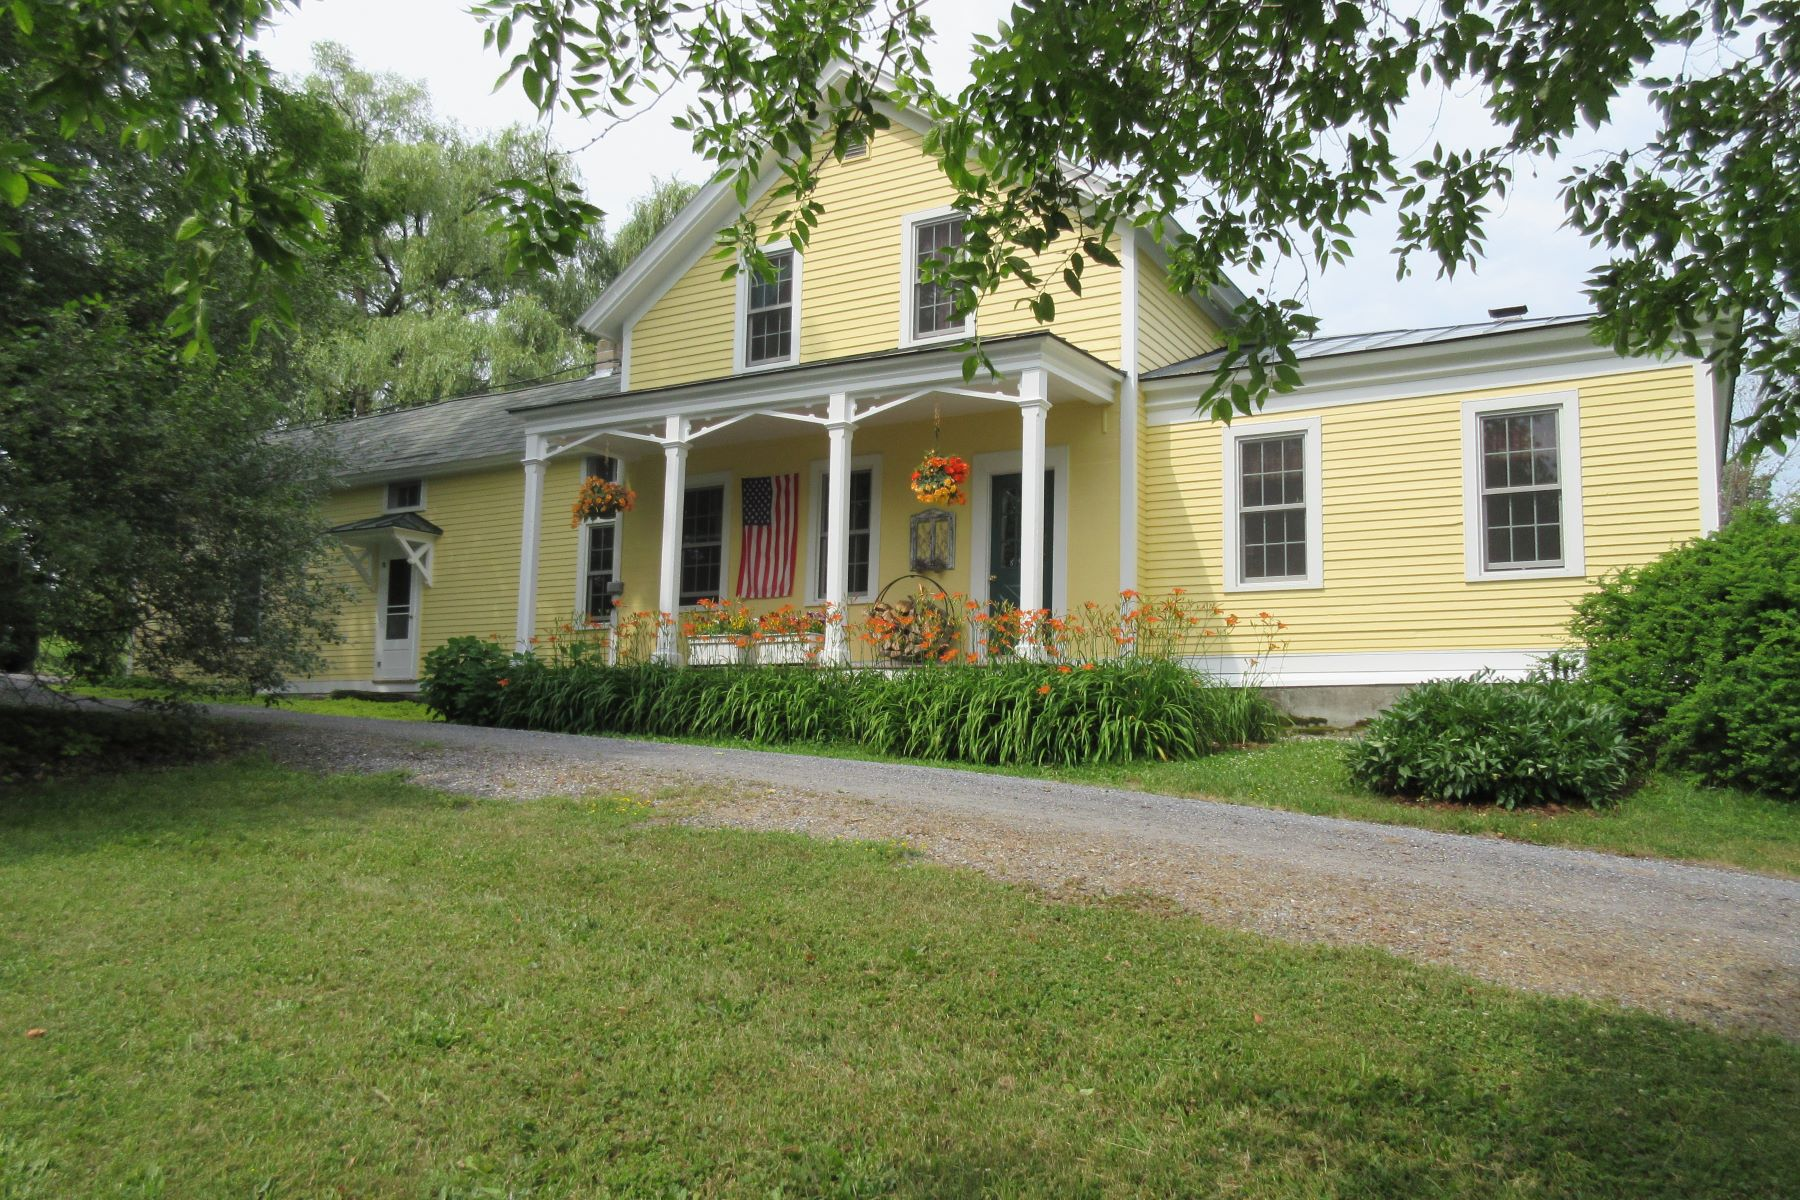 Single Family Homes for Sale at Quintessential New England farmhouse in Shoreham 57 Lapham Bay Rd Shoreham, Vermont 05770 United States